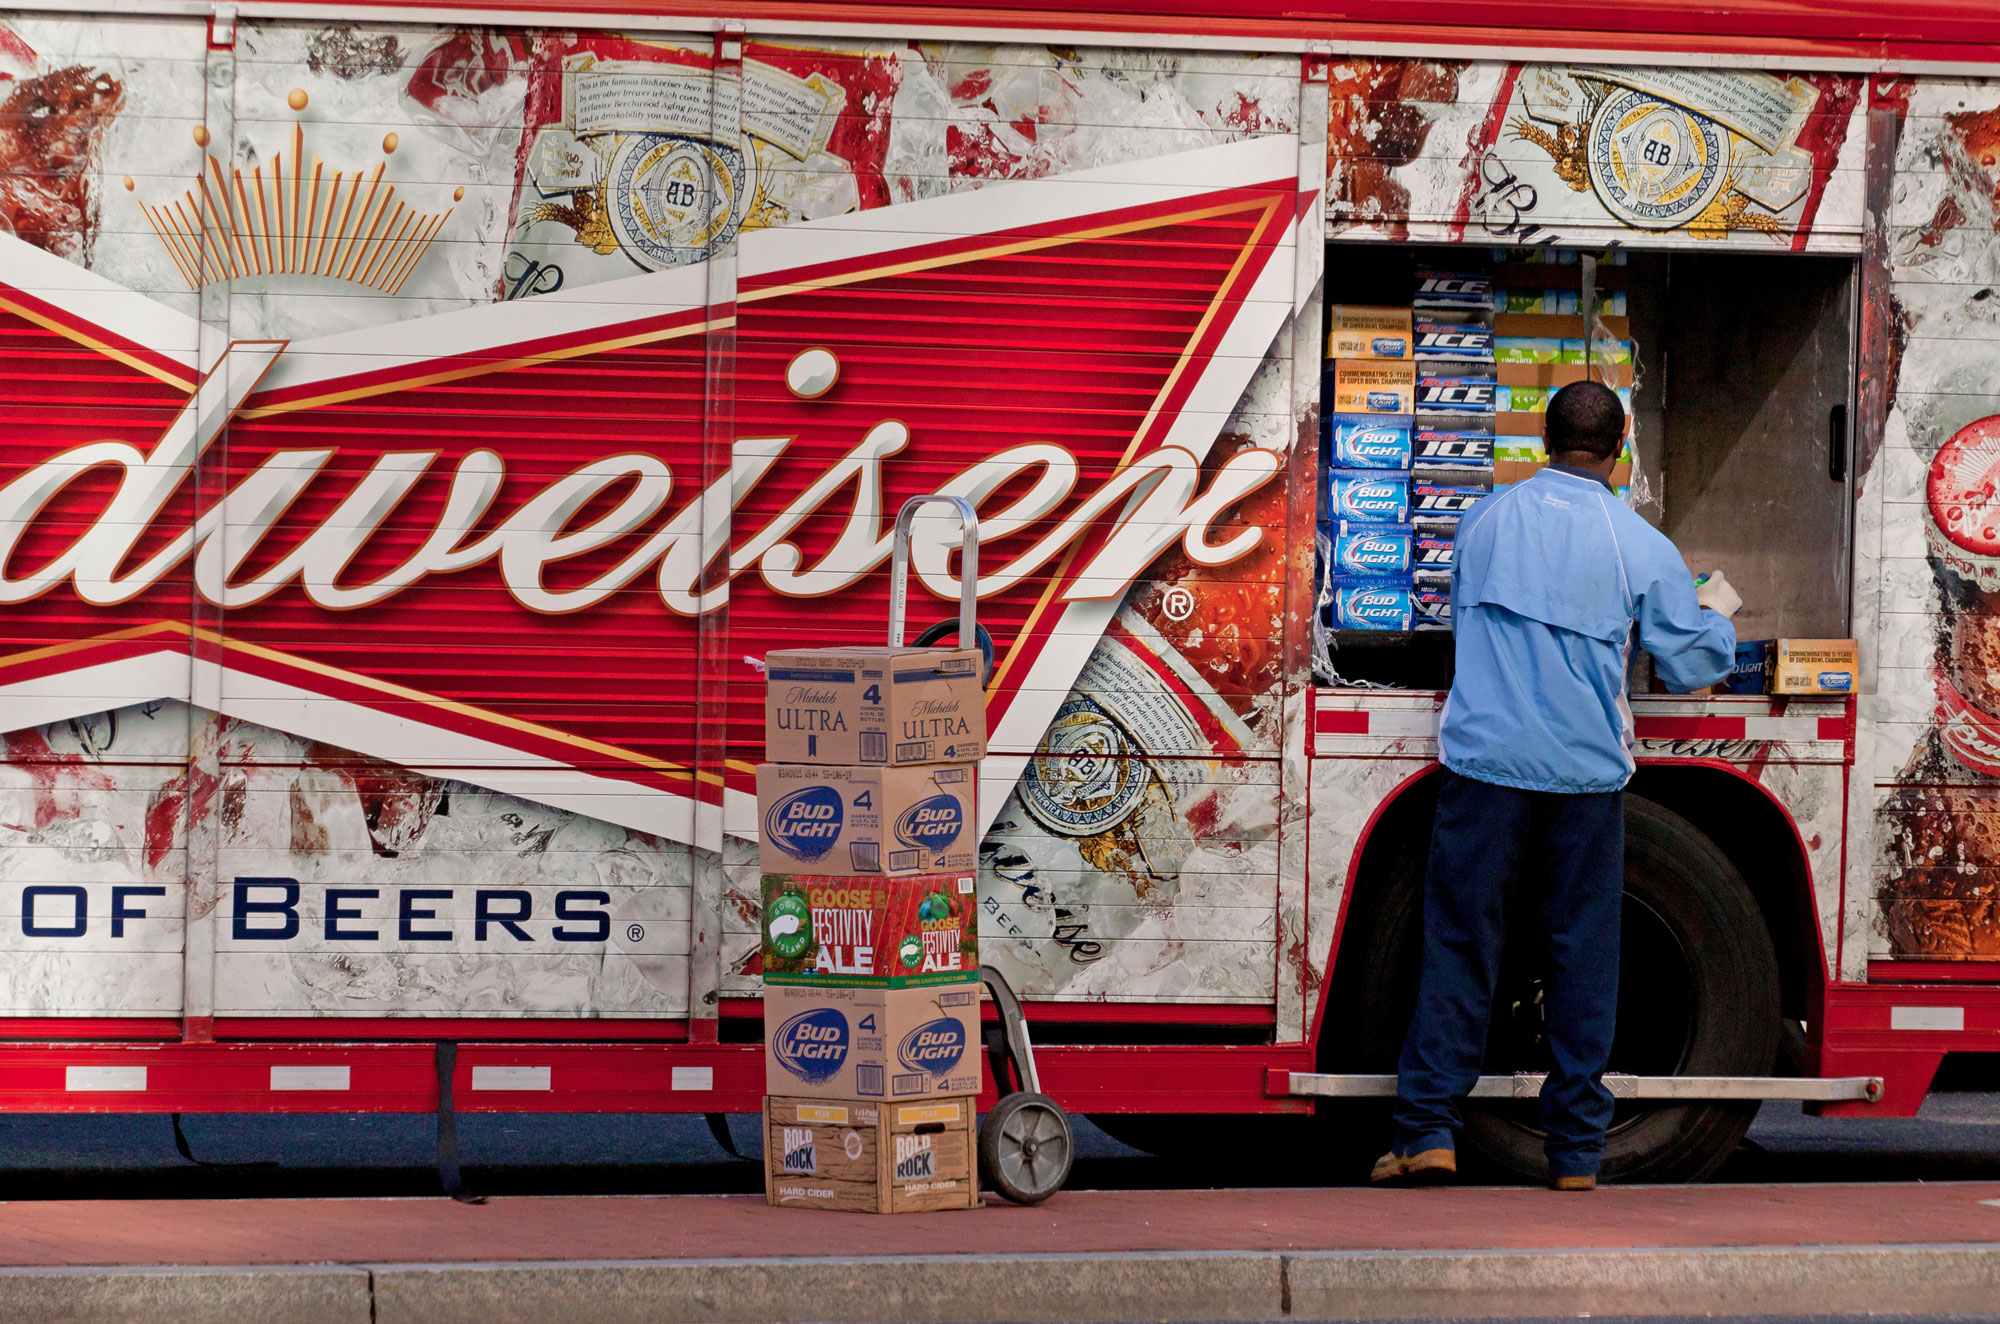 a Budweiser truck delivering cases of beer